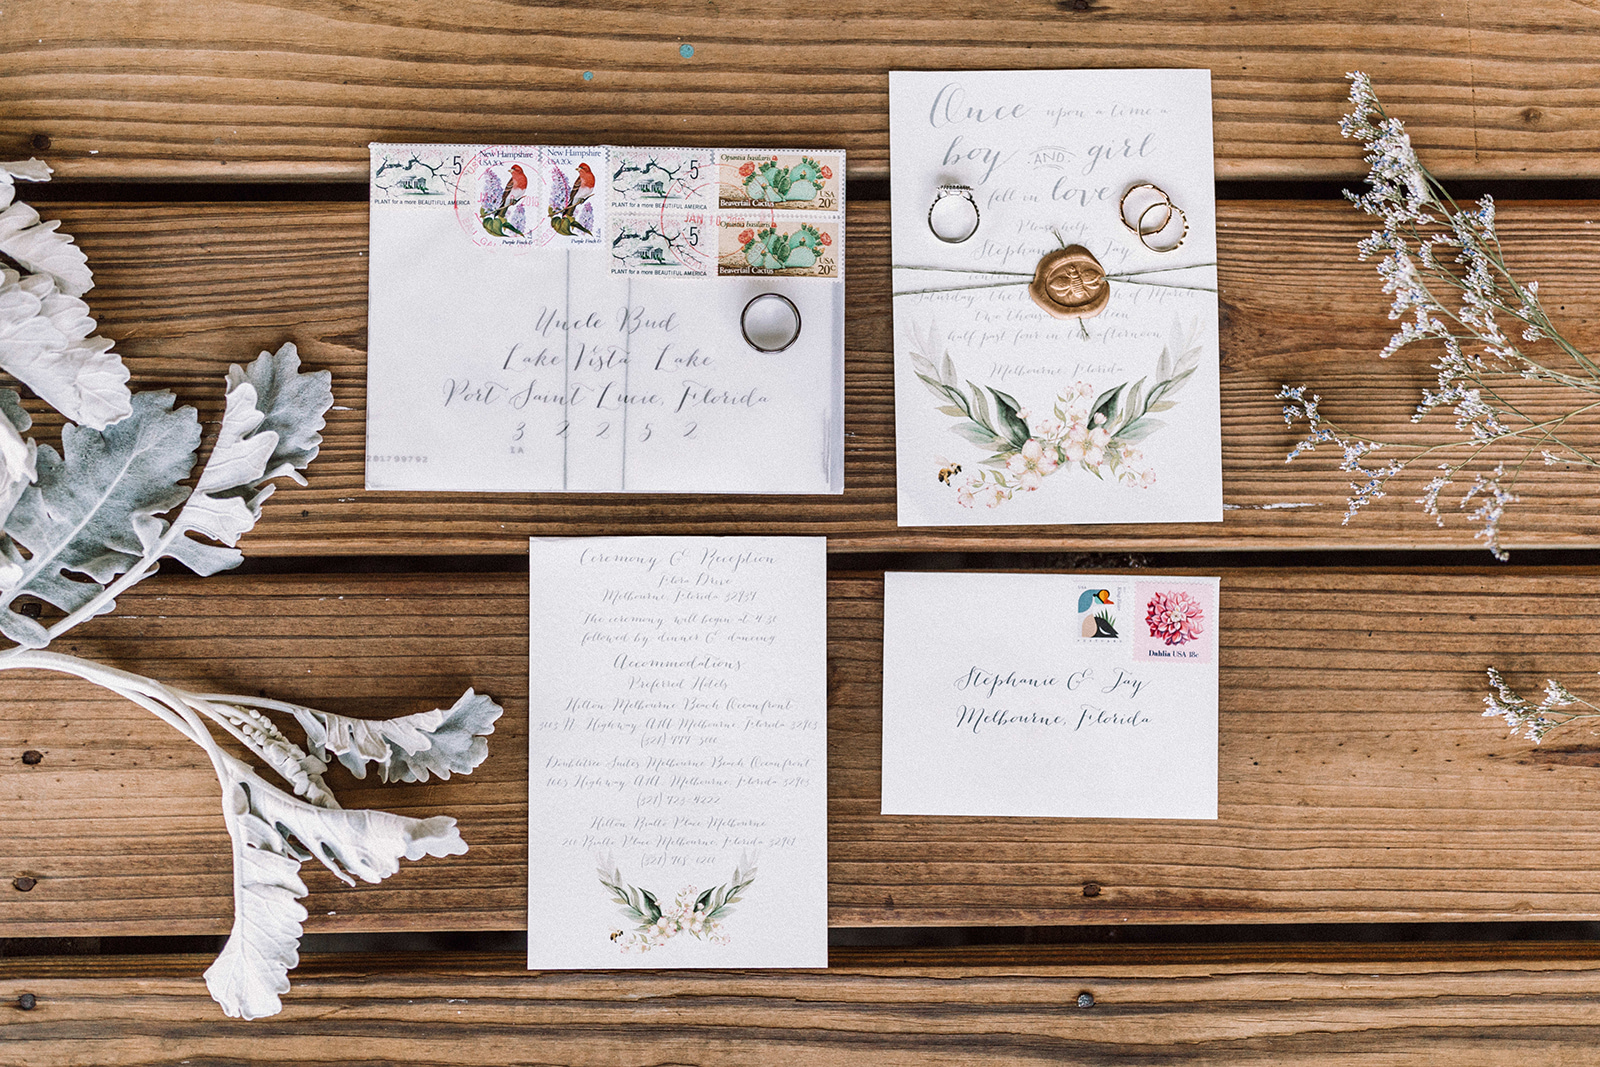 Vintage Garden Party Inspired Backyard Wedding_ Melbourne_ Florida- Jay+Stephanie-90